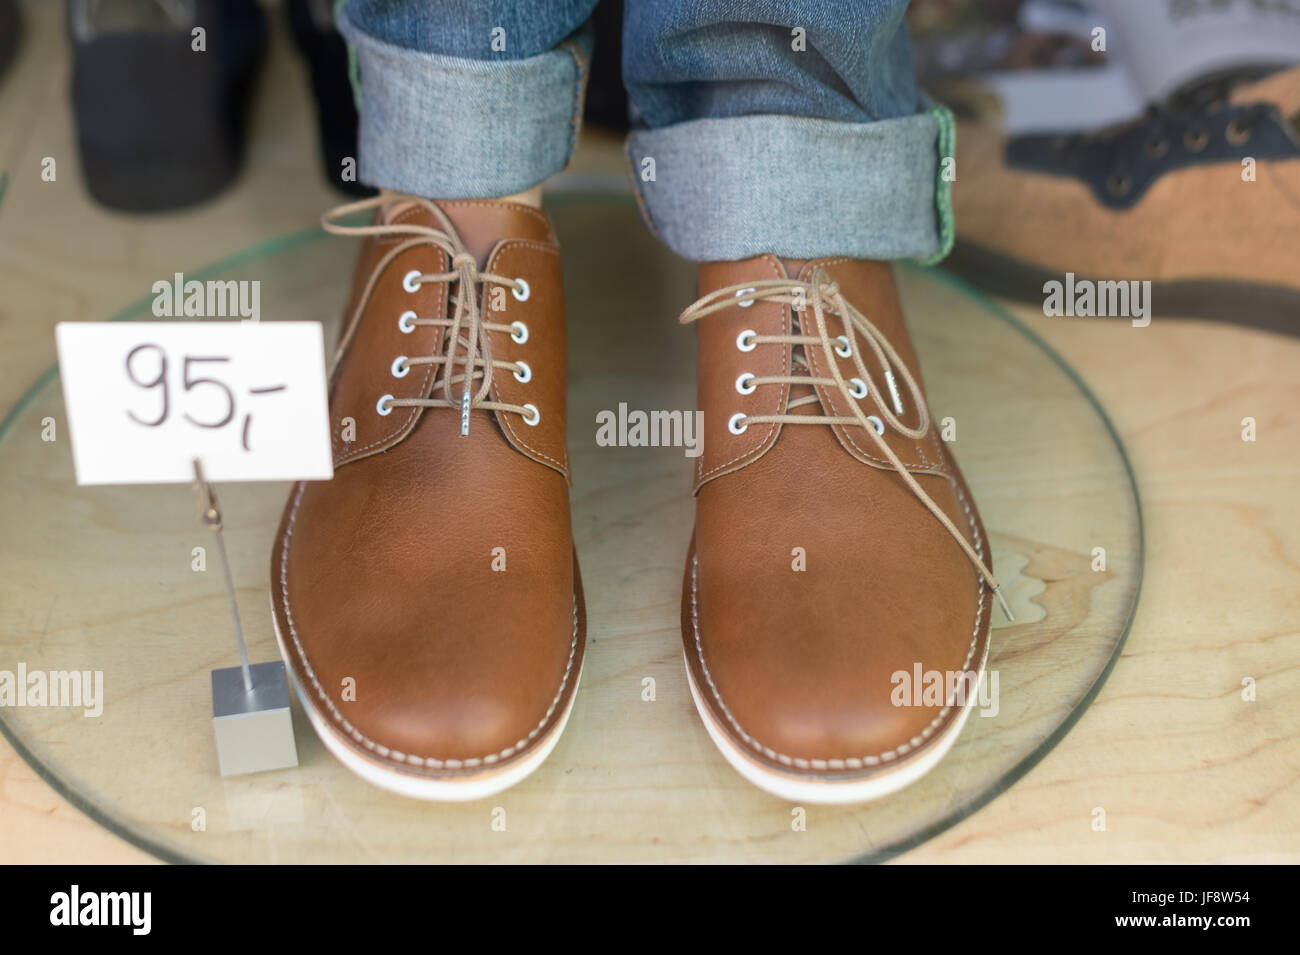 cd797ae37a9 Leather Shoes Germany Photos & Leather Shoes Germany Images - Alamy